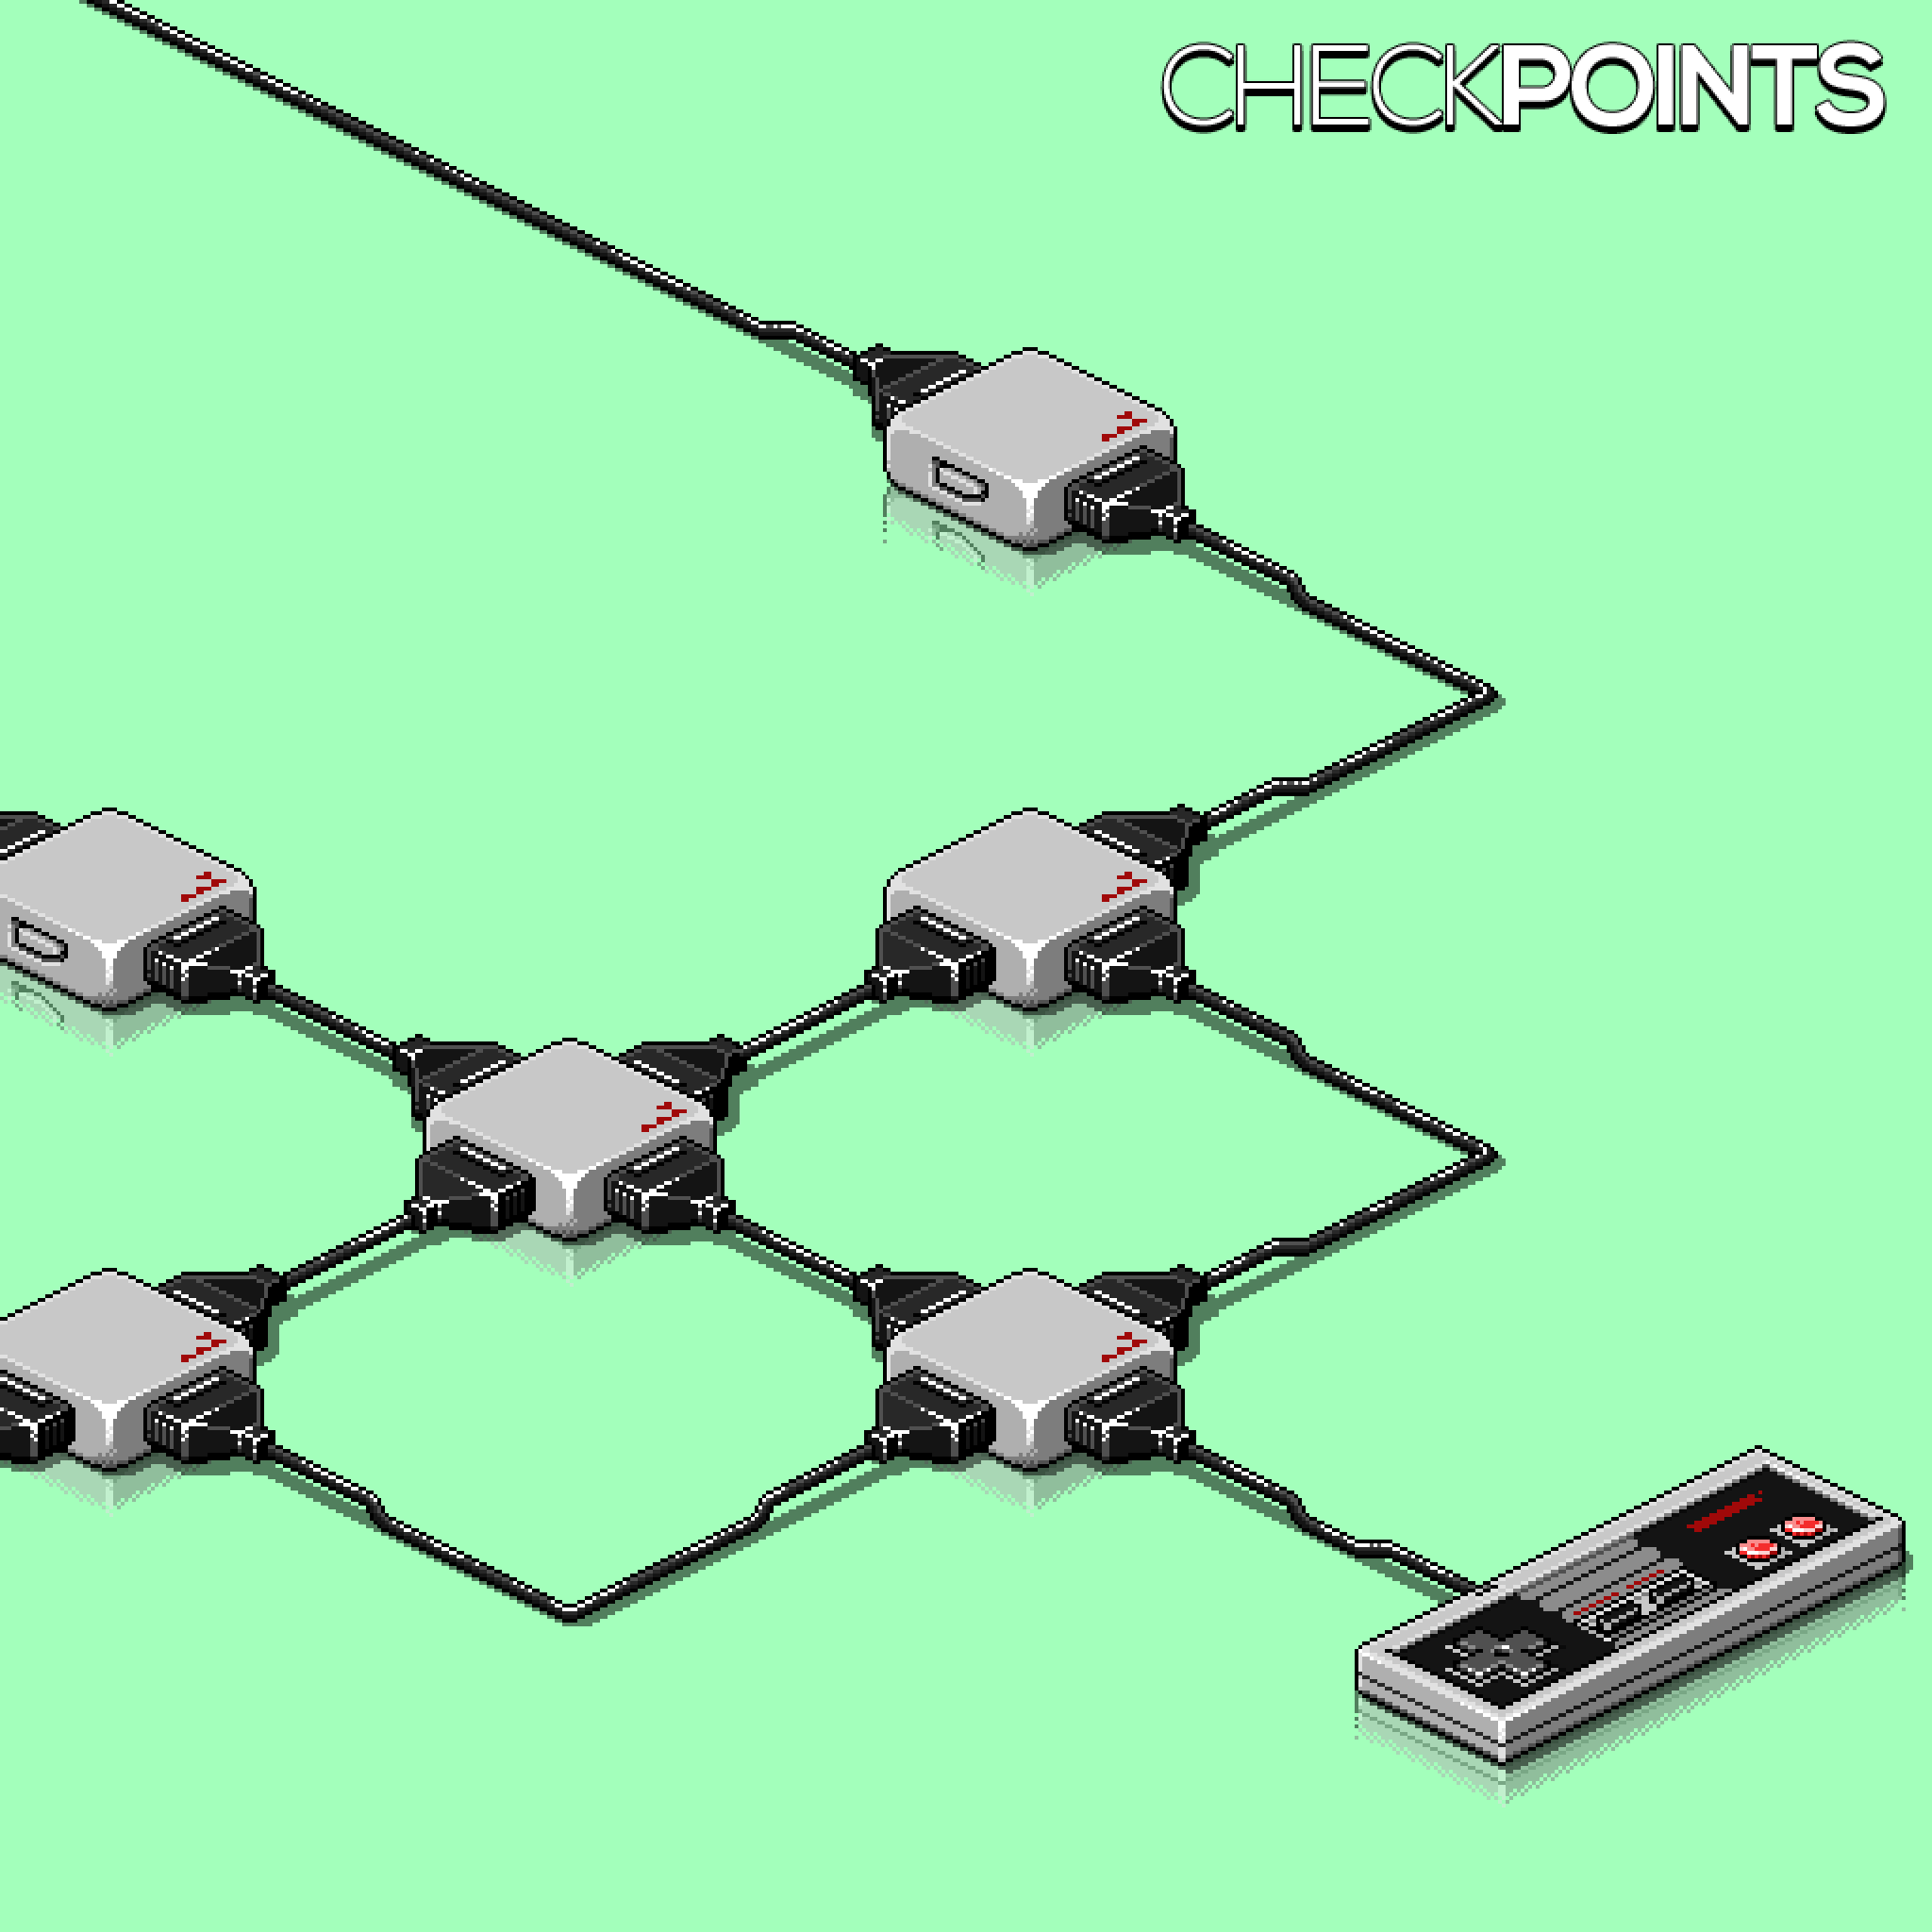 checkpoints nes 2048 variation example.png